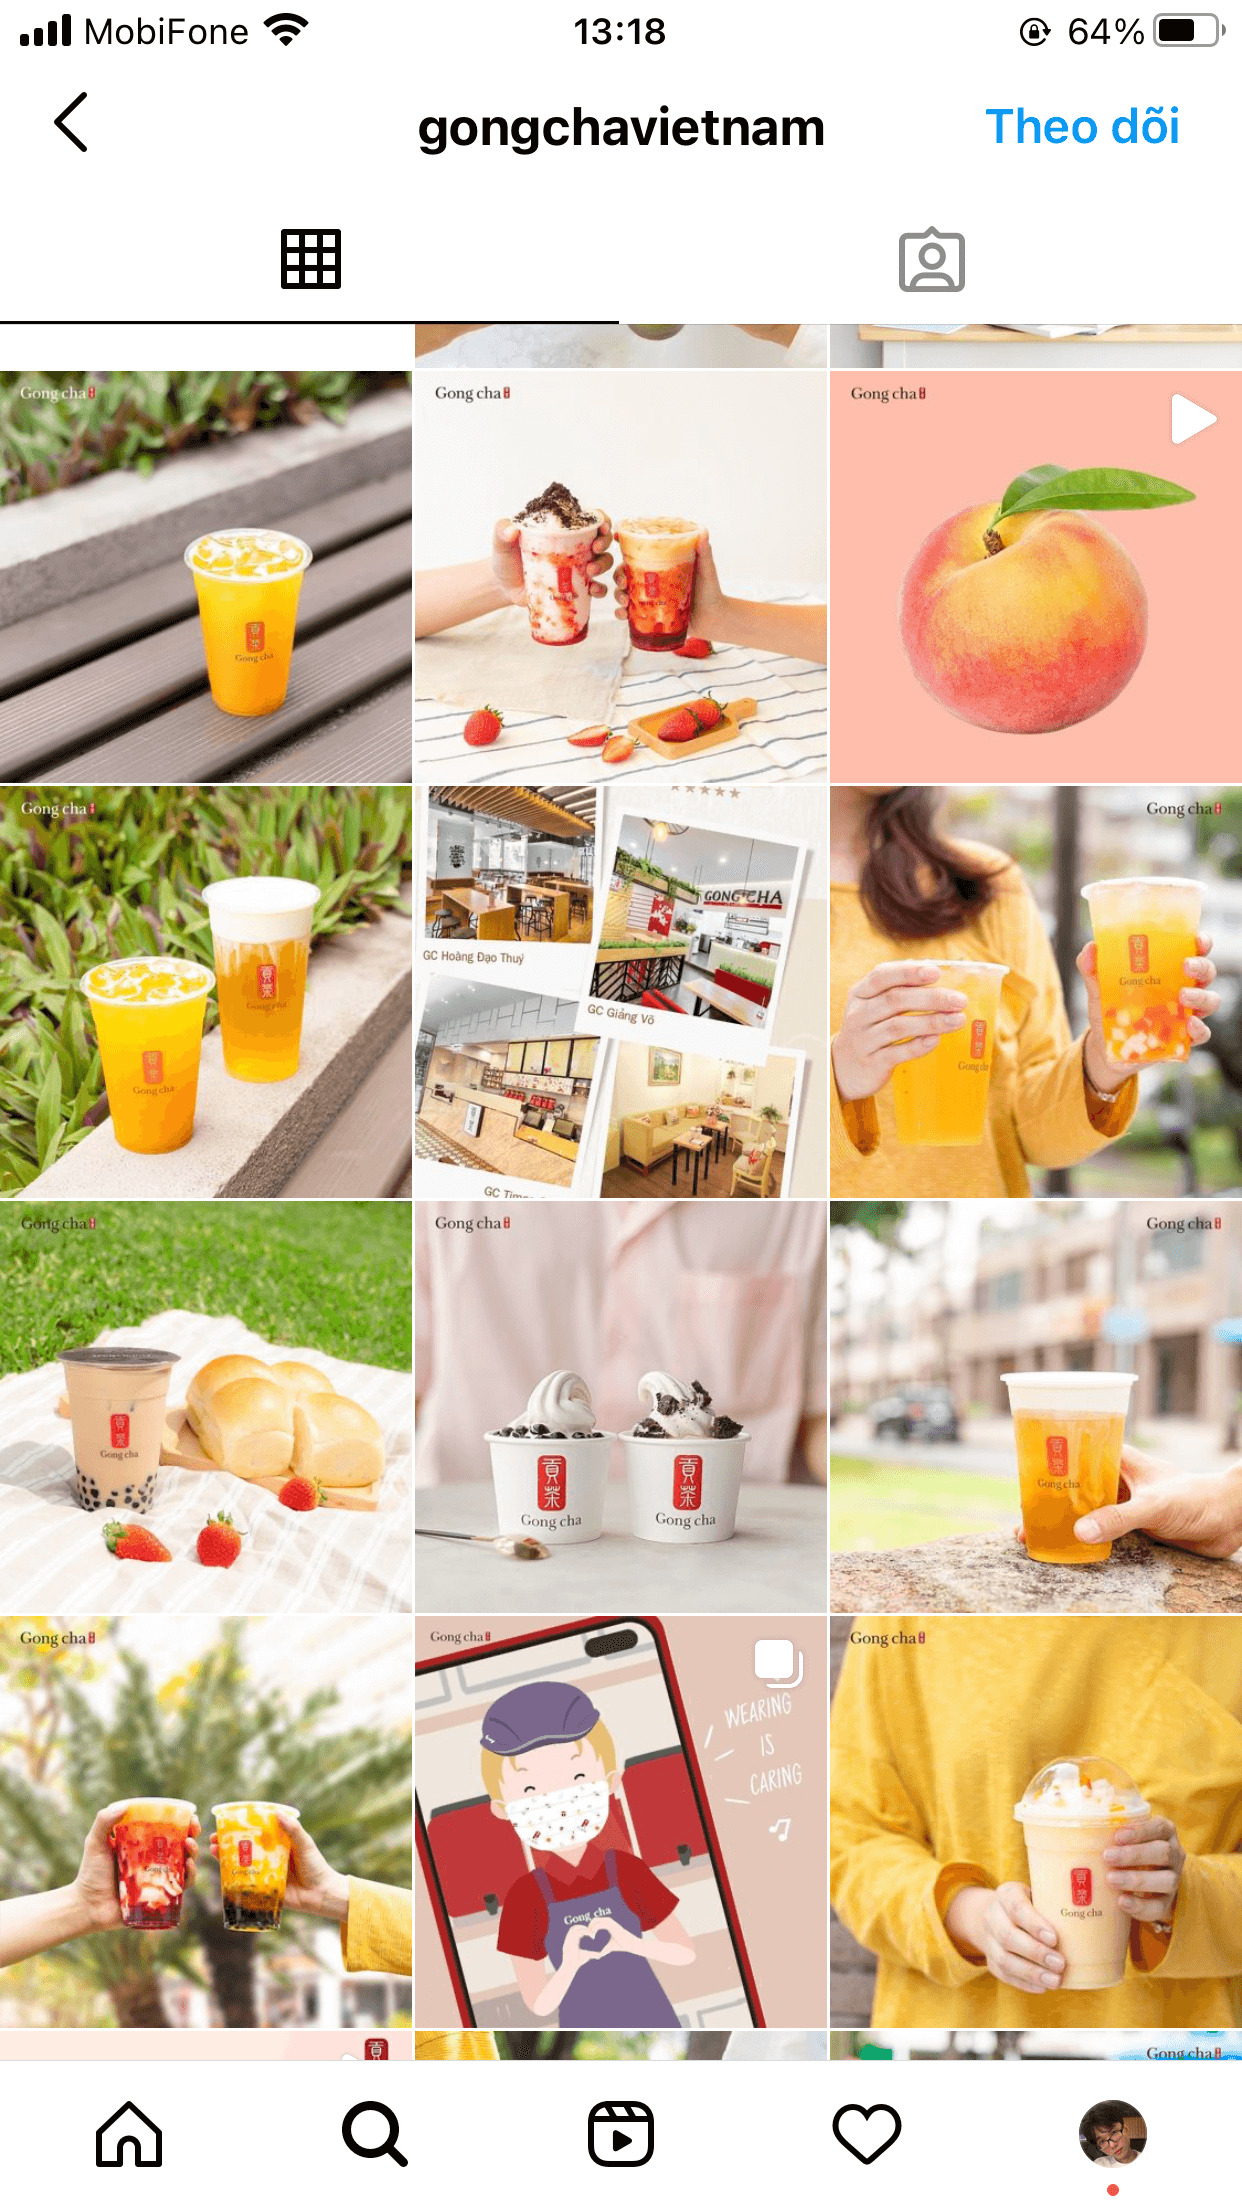 The pastel palette makes the brand Instagram feed looks cheerful